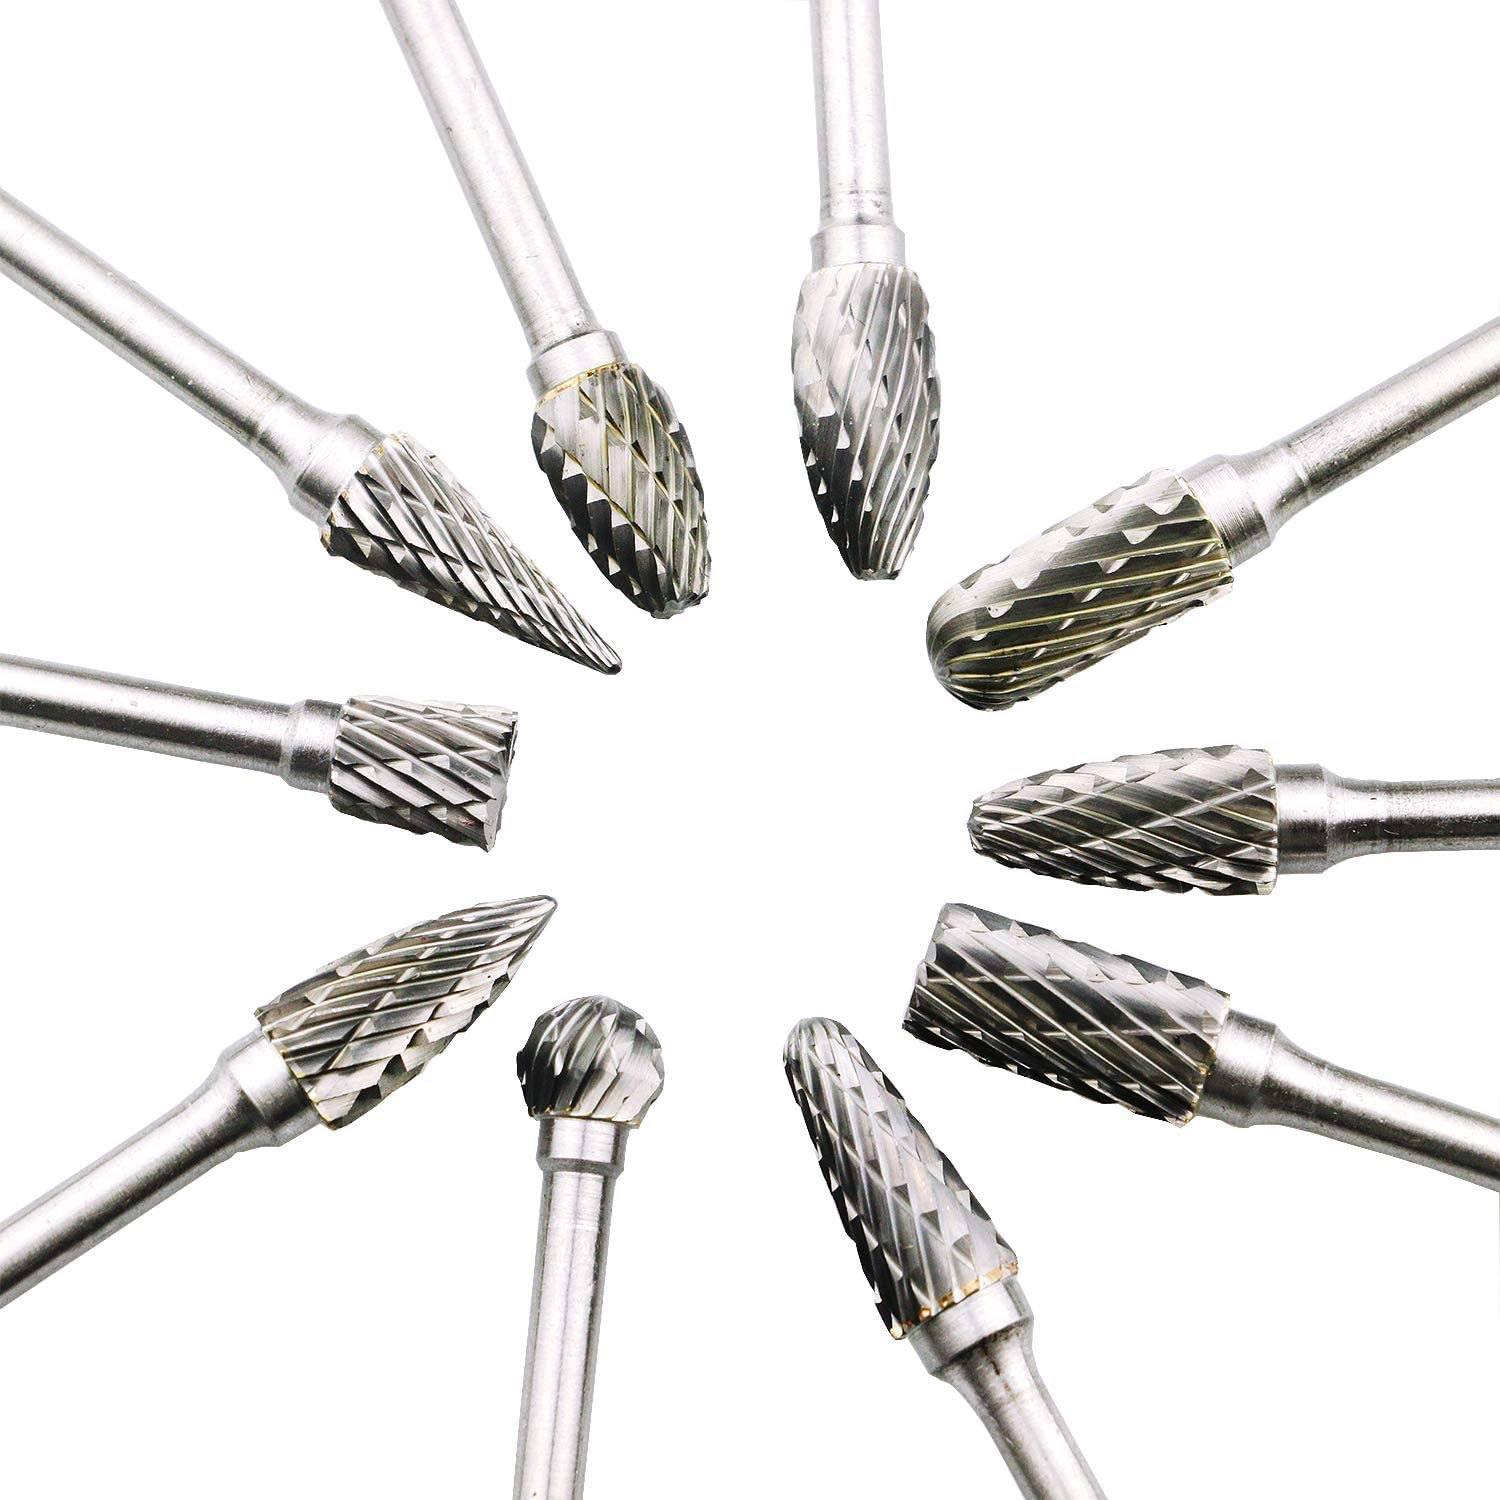 Wood-Working Carving Carbide Burr Set Tungsten Carbide burr drill Bit Set 10 Pcs Rotary Double Cut Carving Drill with 1//8In Shank and 1//4 In Head for Grinder Drill Metal Polishing,Drilling Etc